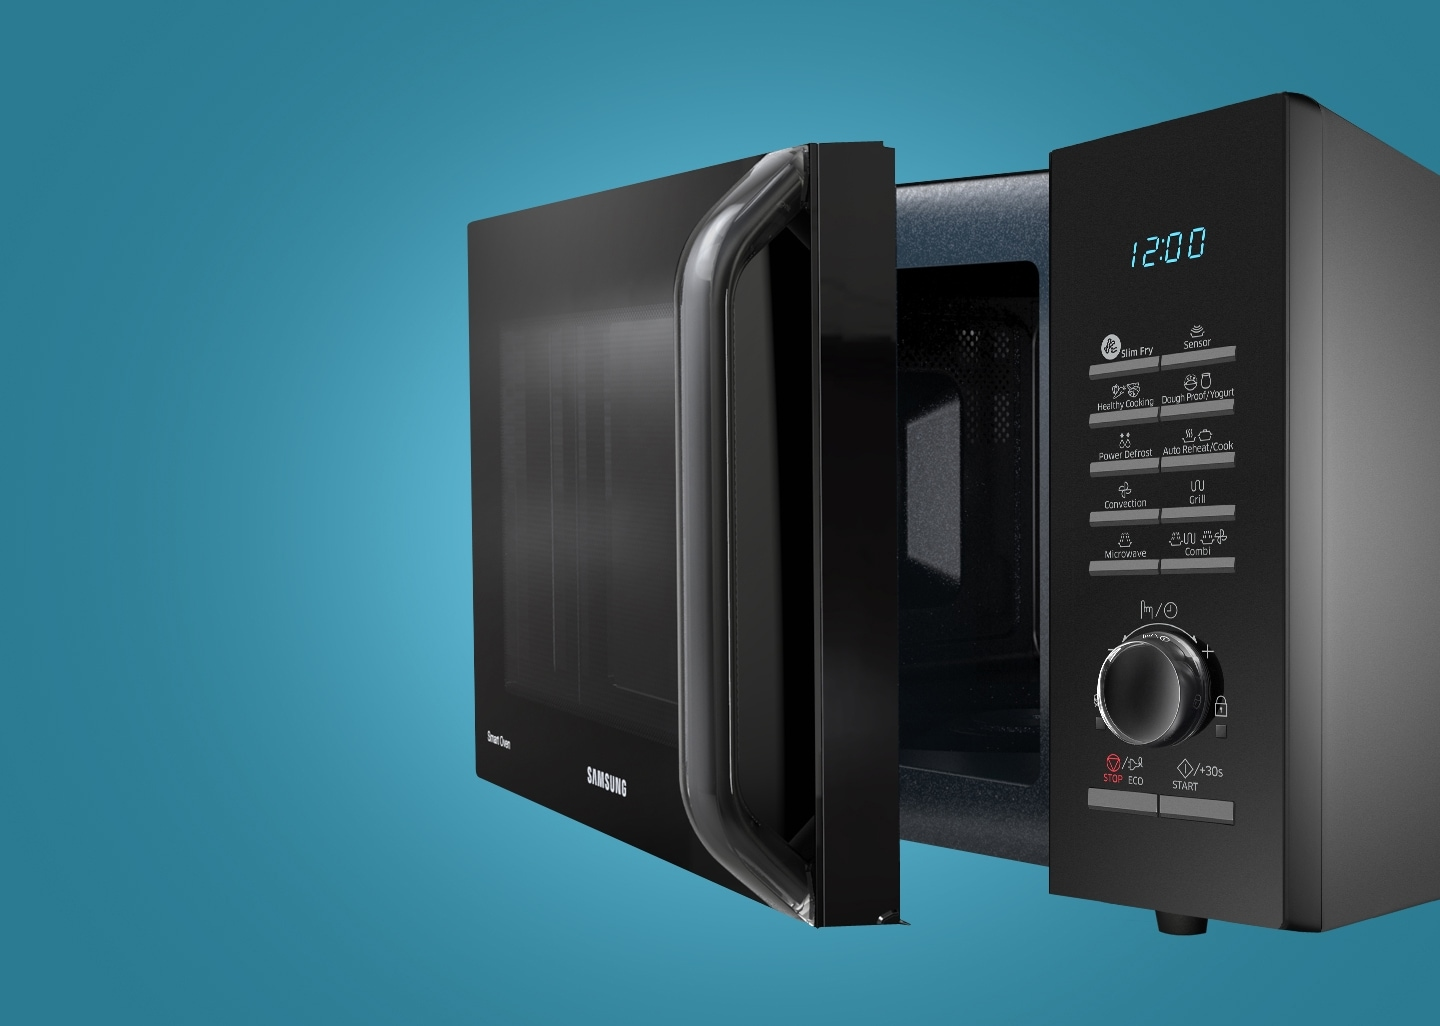 Microwave with touch panel